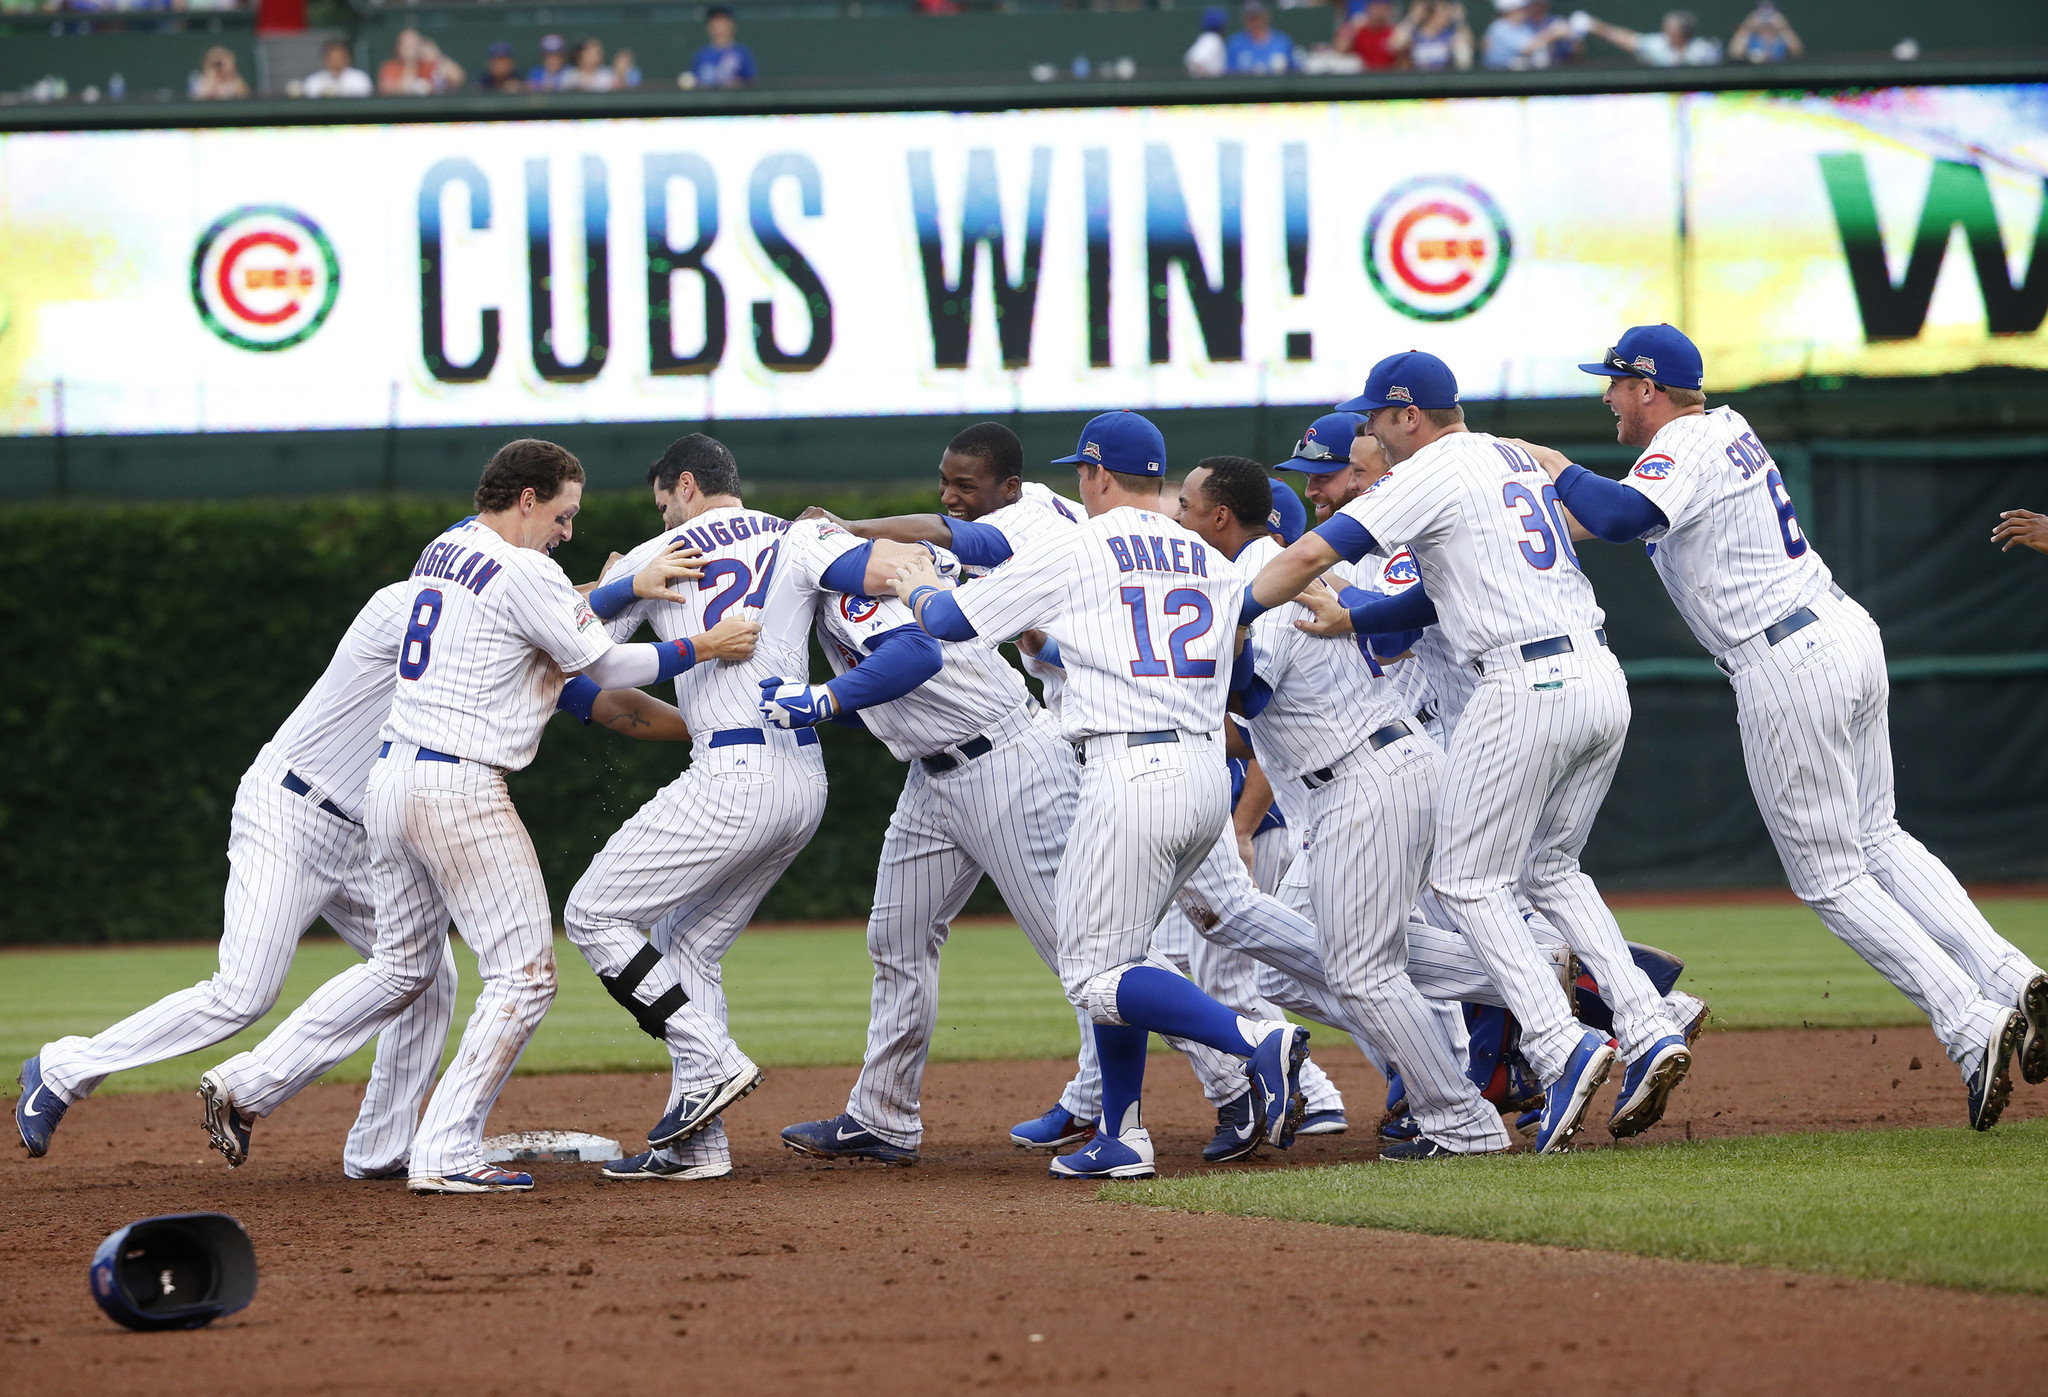 Go song go: Vote for the next Cubs hit